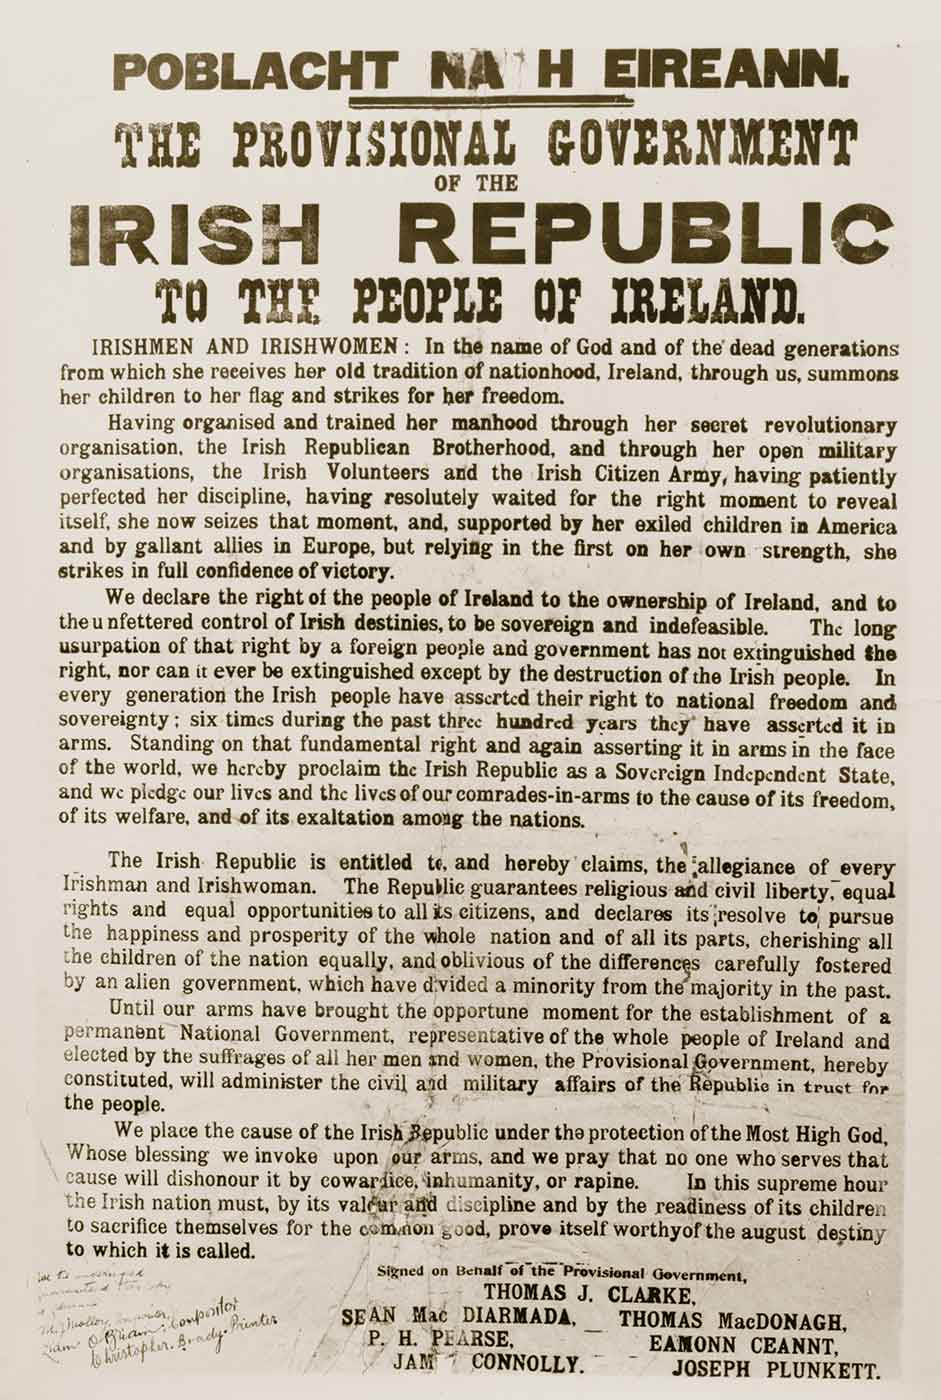 Old printed publication featuring text: THE PROVISIONAL GOVERNMENT OF THE IRISH REPUBLIC. - click to view larger image